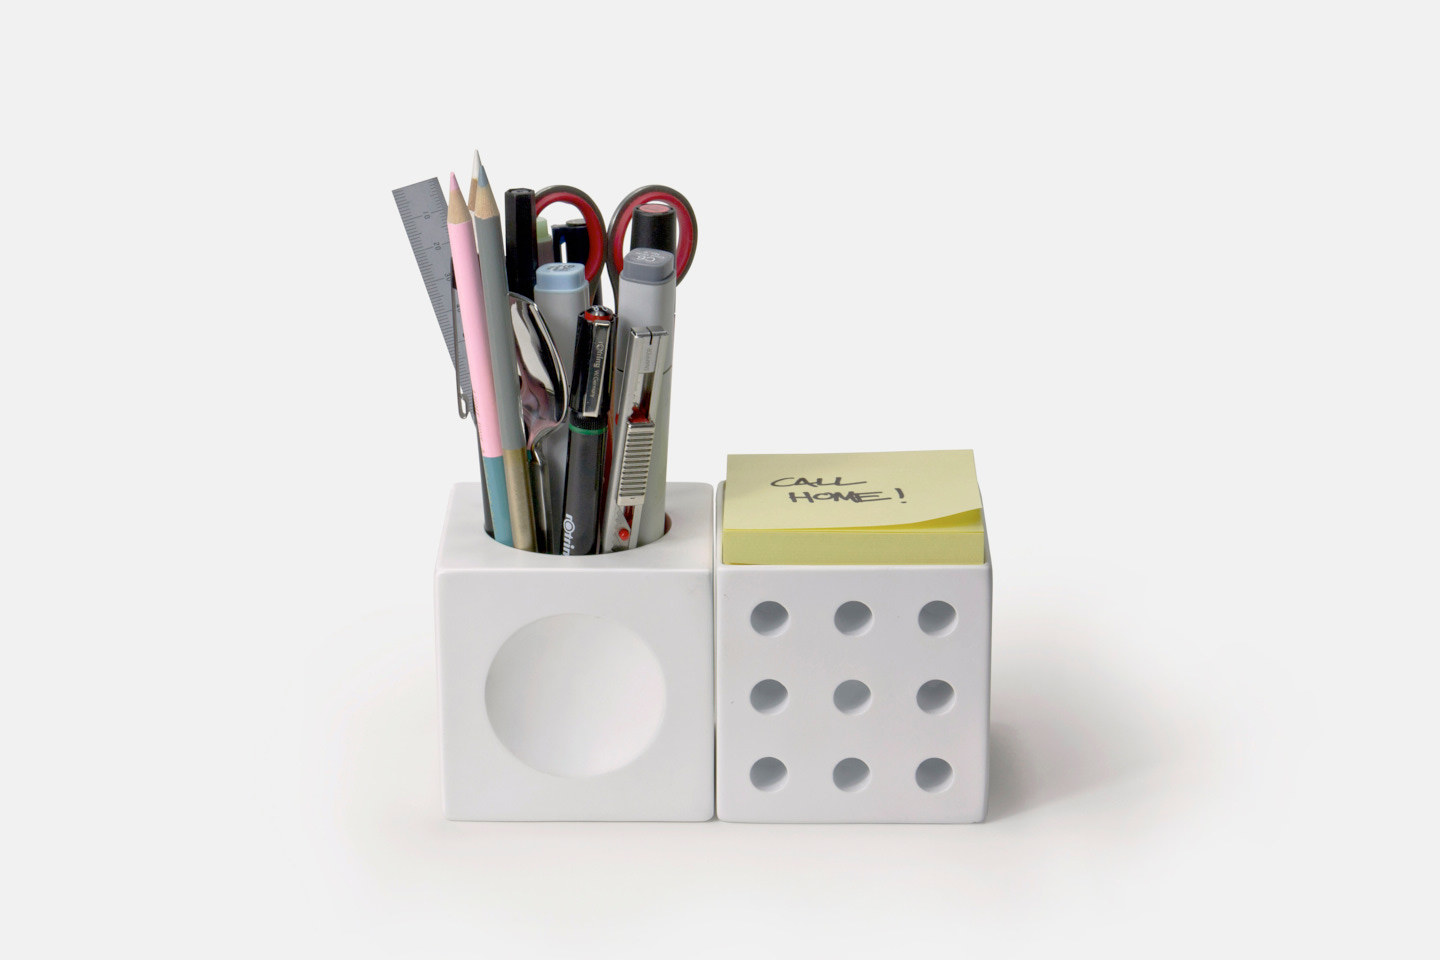 Office Desk Organiser Desk Organiser Office For Product Design